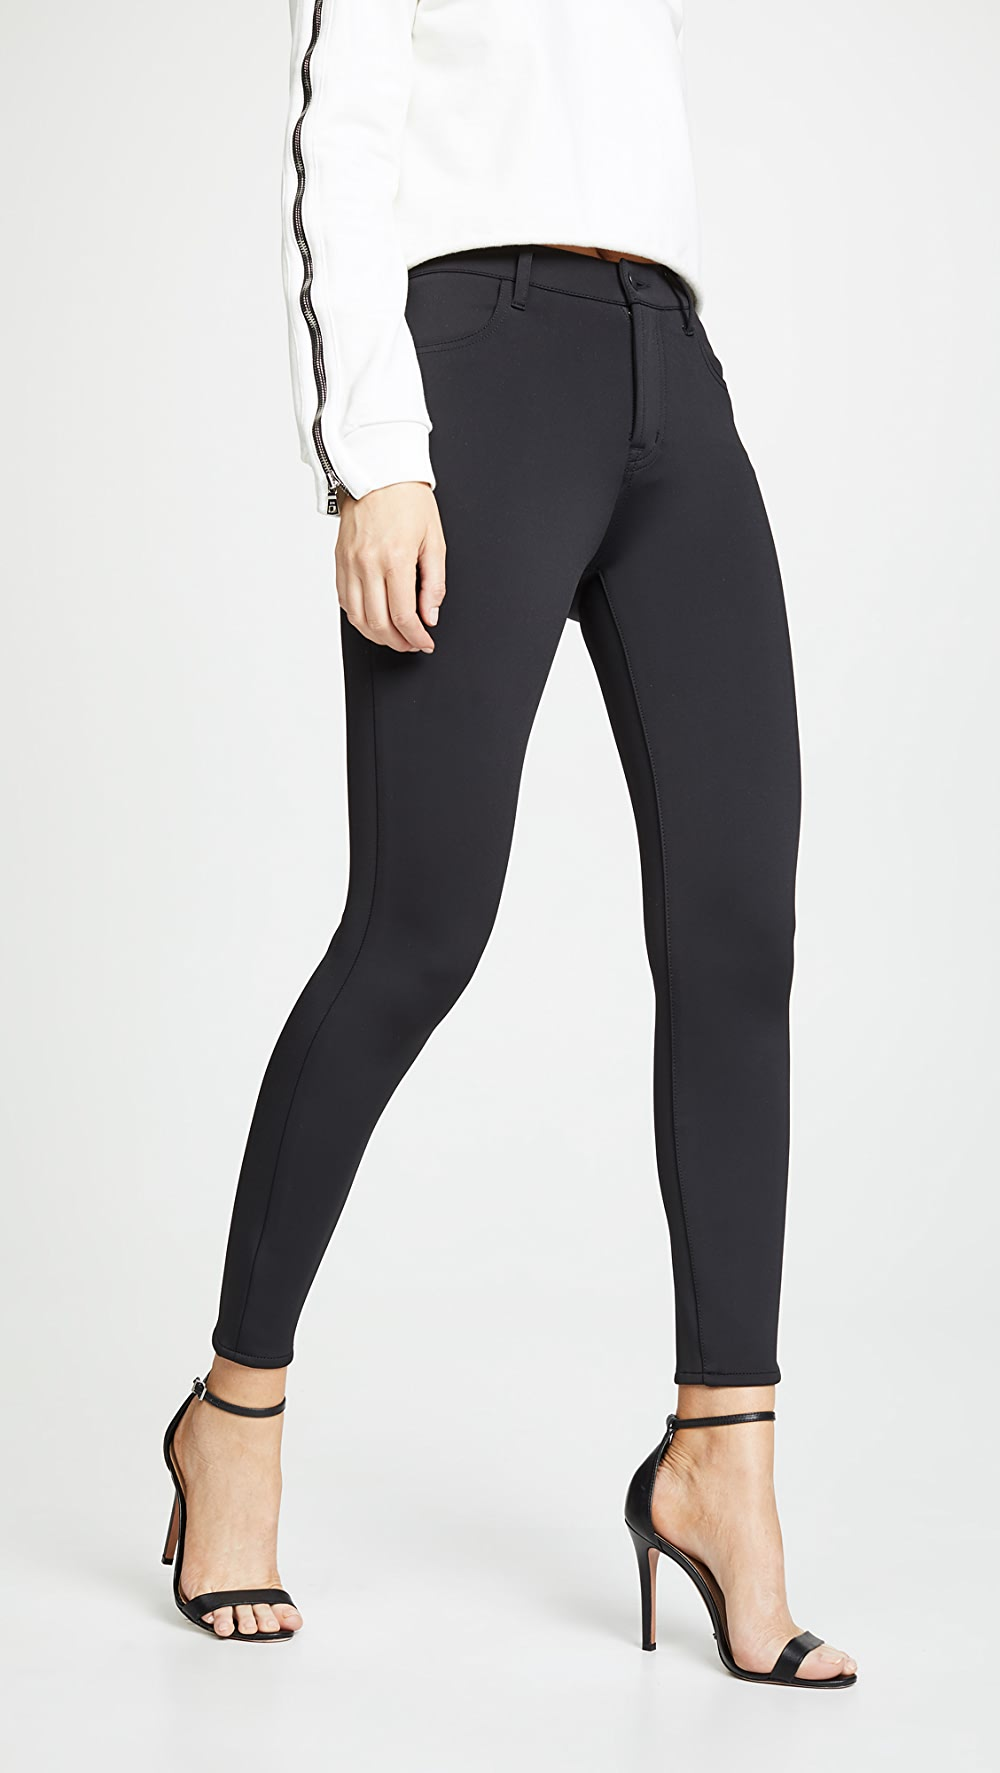 Independent J Brand - Alana High Rise Skinny Pants We Take Customers As Our Gods